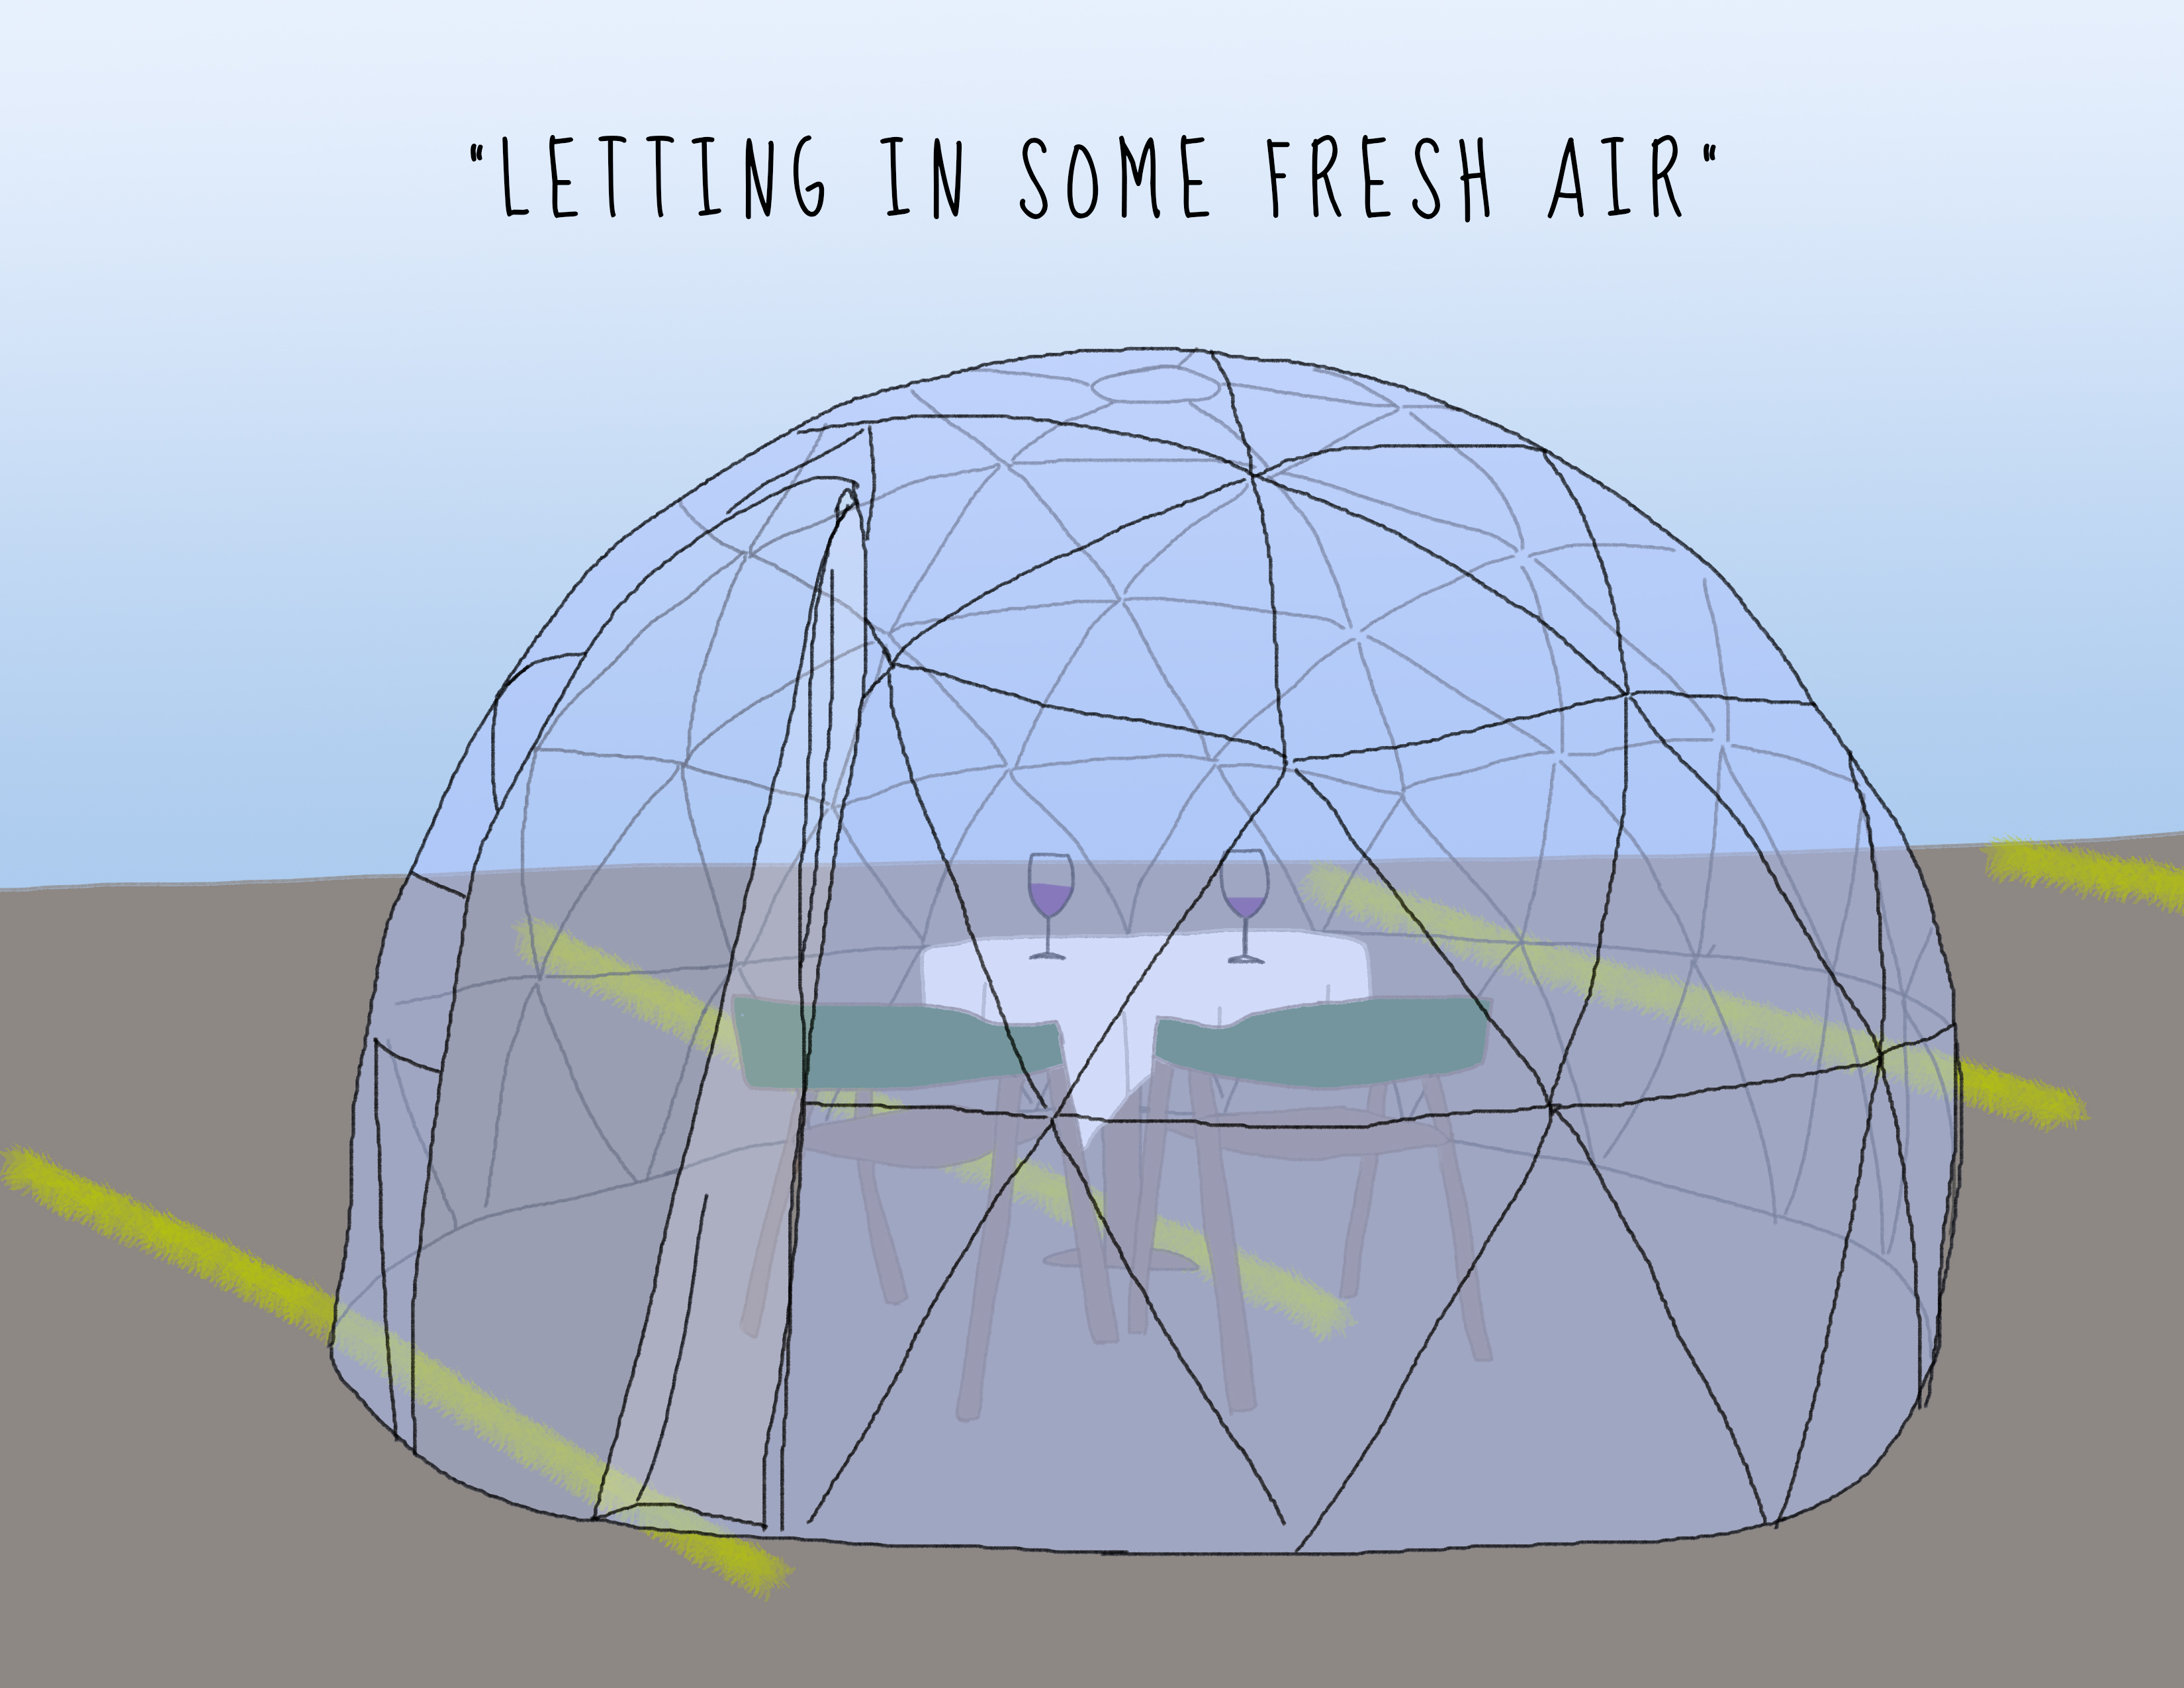 Drawing of outdoor see through igloo with table and chairs inside